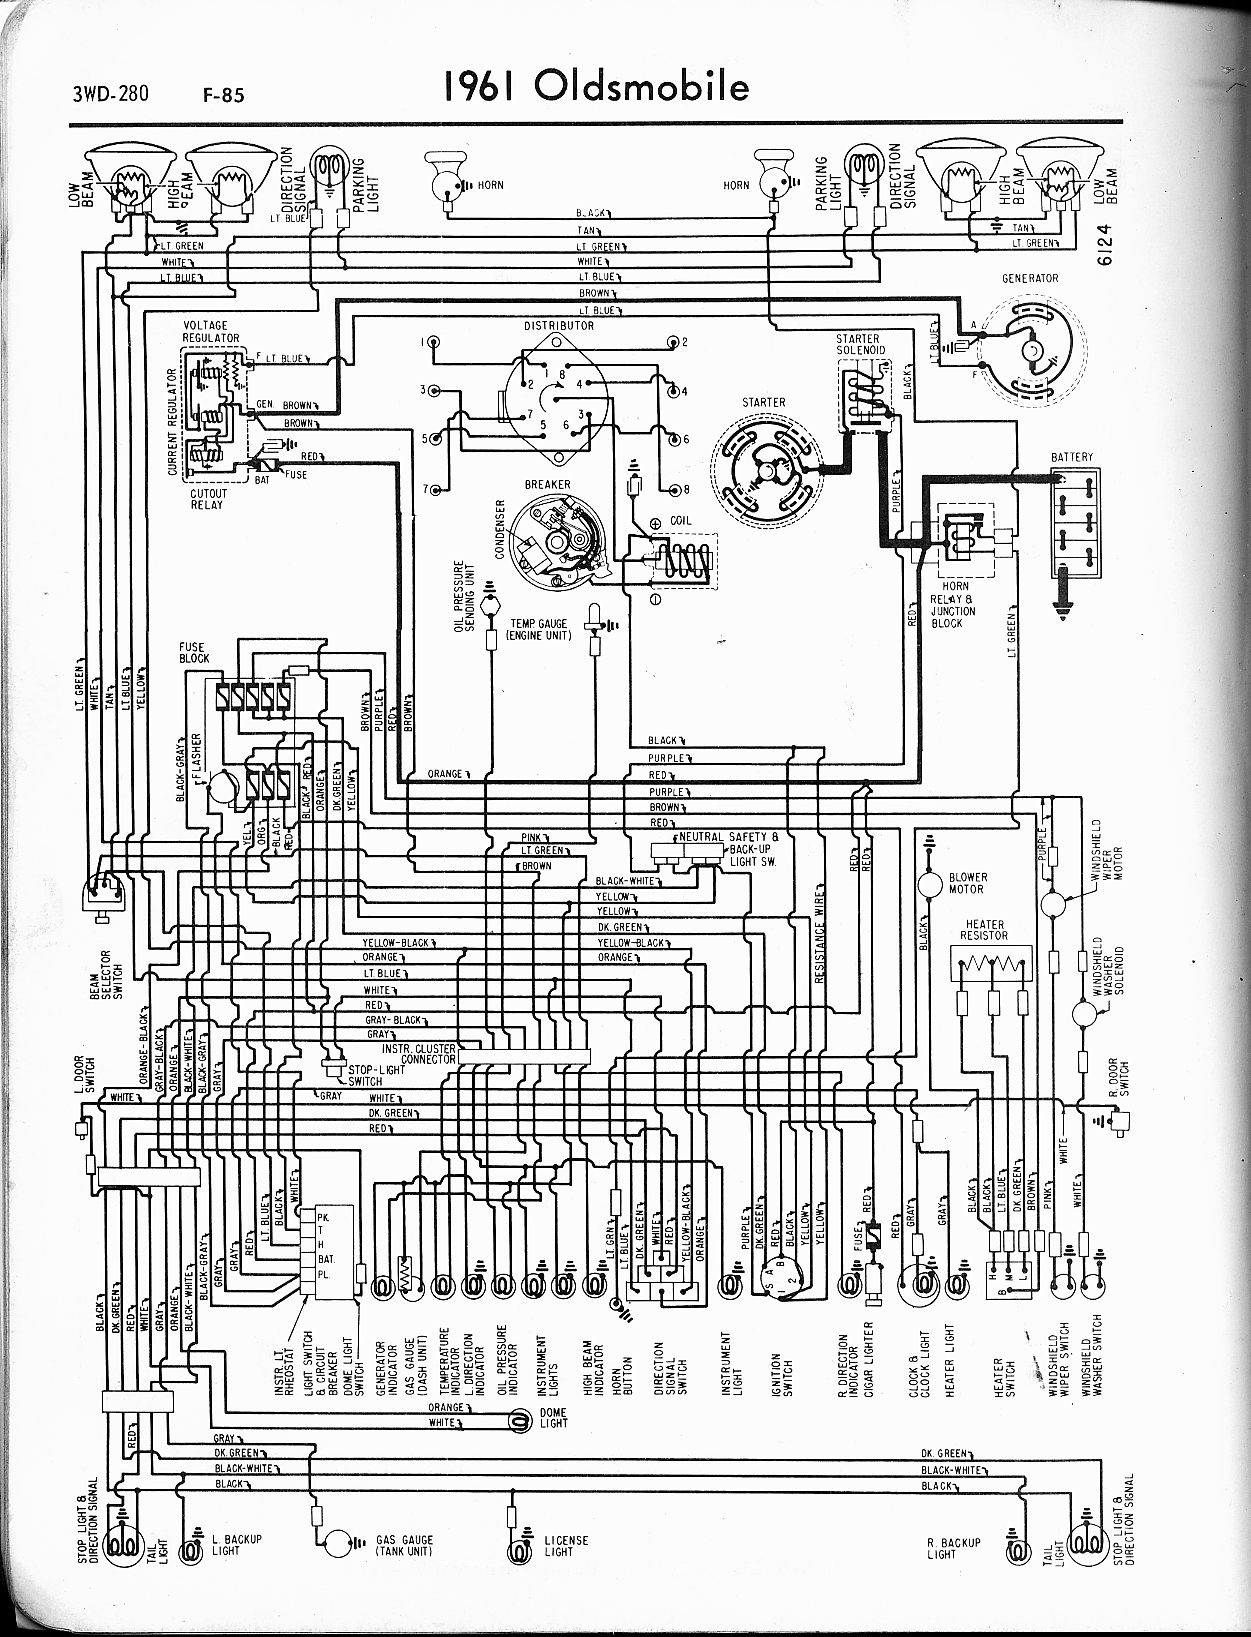 1998 Oldsmobile Intrigue Wiring Diagram New Media Of Dodge Steering Column 1979 Detailed Rh 9 2 Gastspiel Gerhartz De Gm